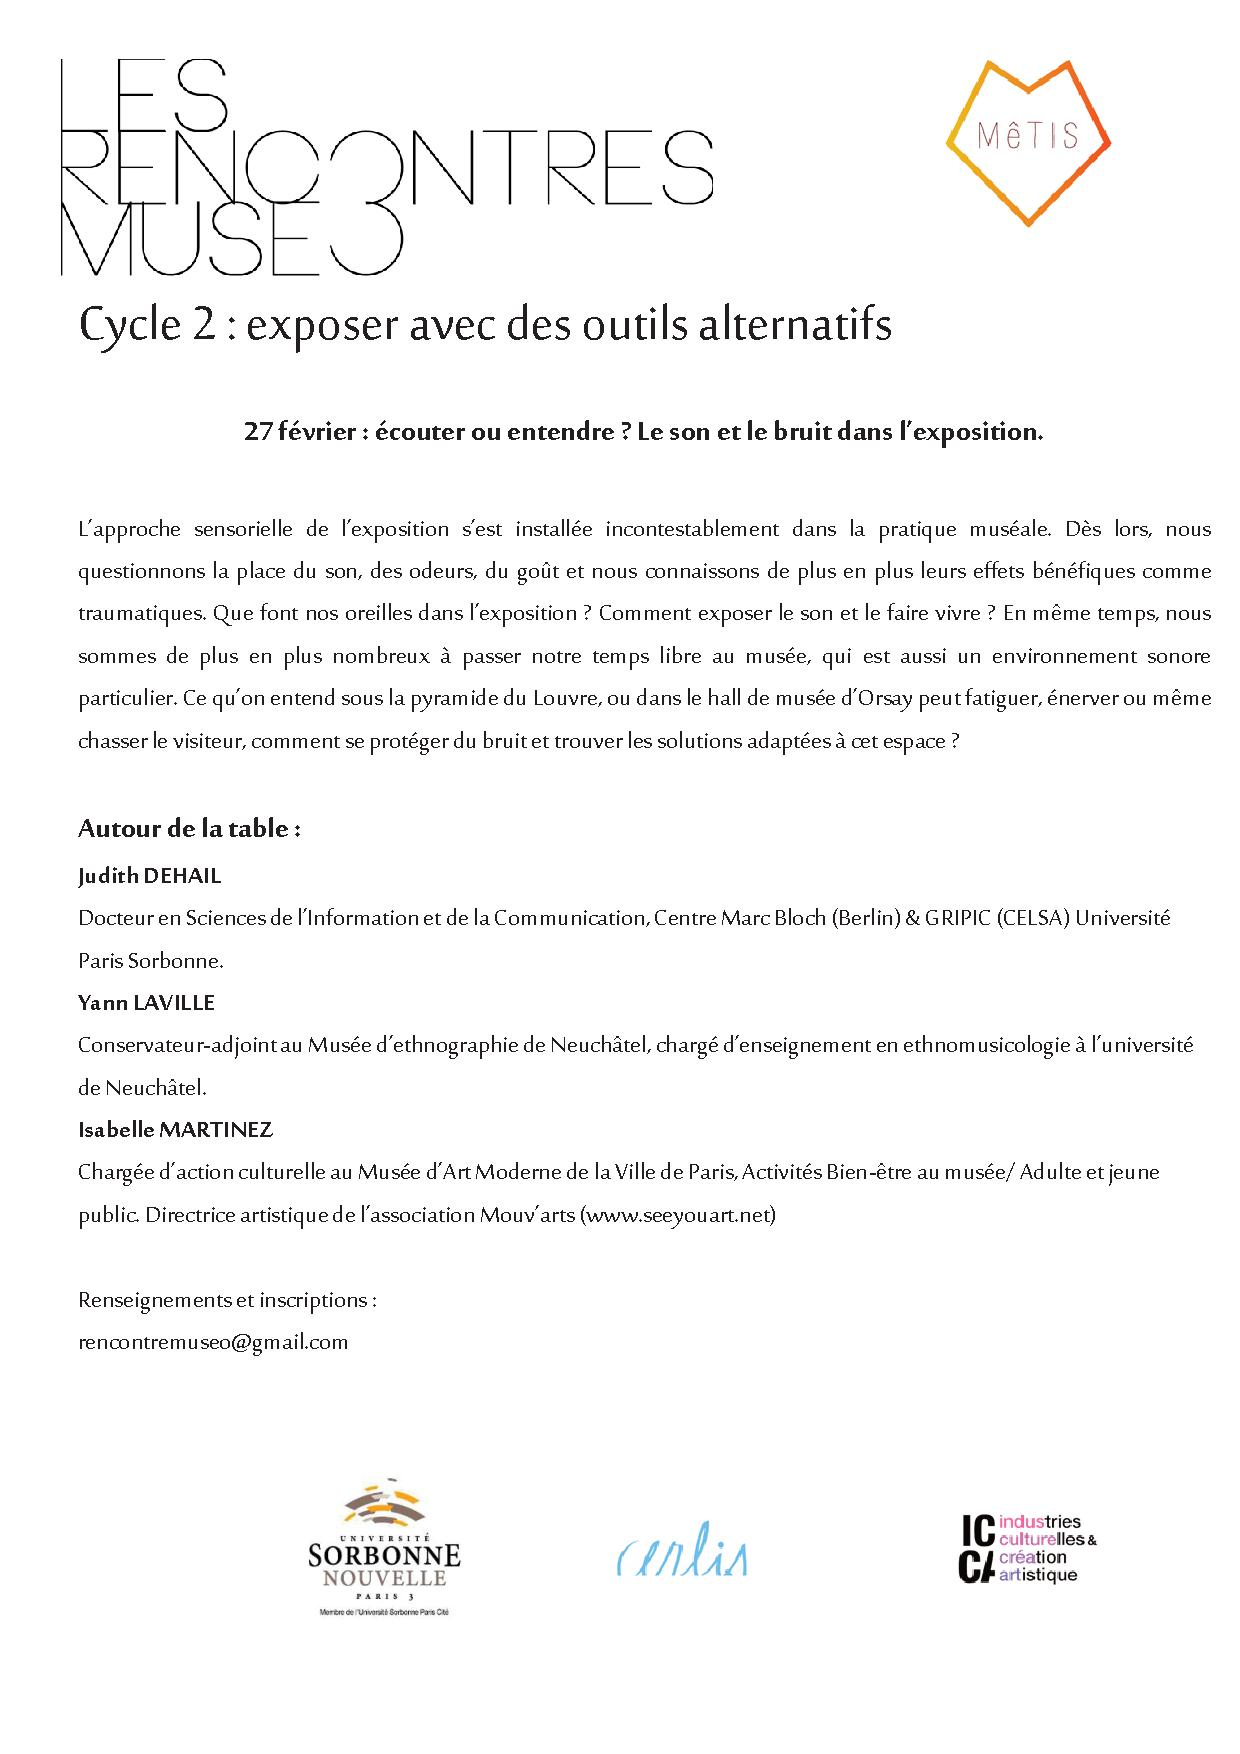 <strong>Le 27 février  </strong> &#8211; Rencontres Museo